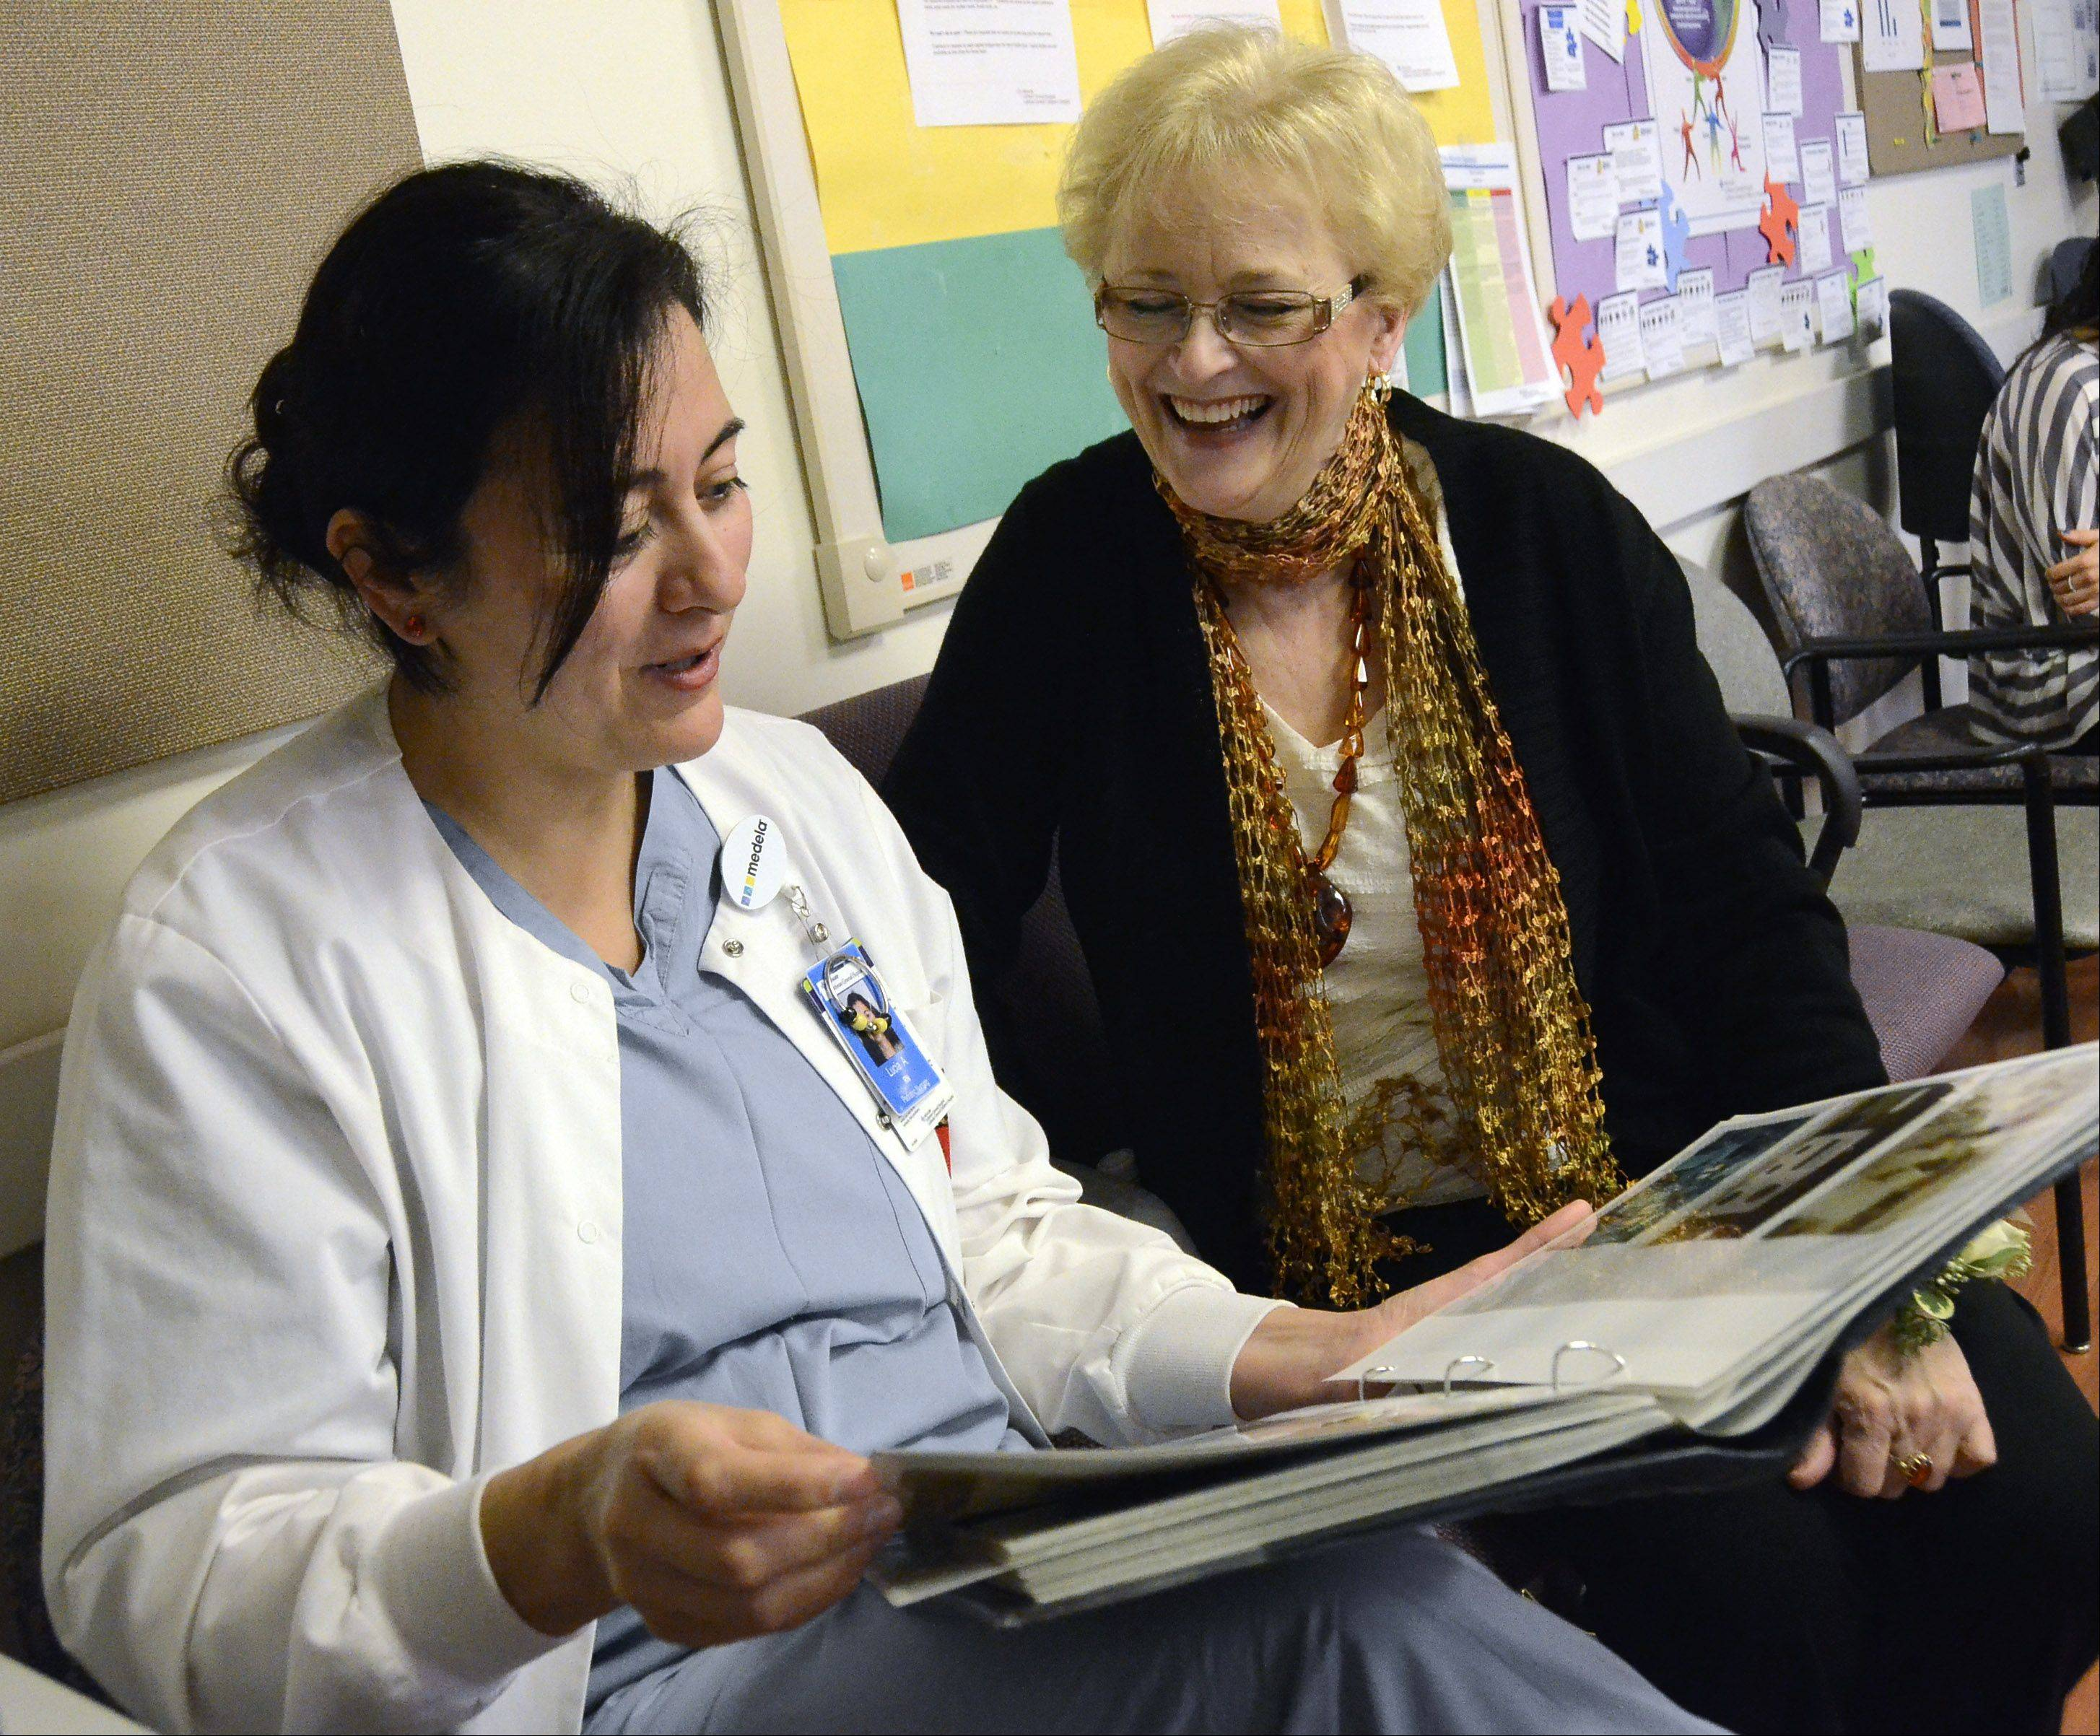 Advocate Lutheran General Hospital nurses Lucia Arenas, left, and Ann Skwarek of Prospect Heights, look at photos of Skwarek's 40 years of service at Advocate Lutheran General Hospital. Skwarek started working in the neonatal intensive care unit shortly after it opened.